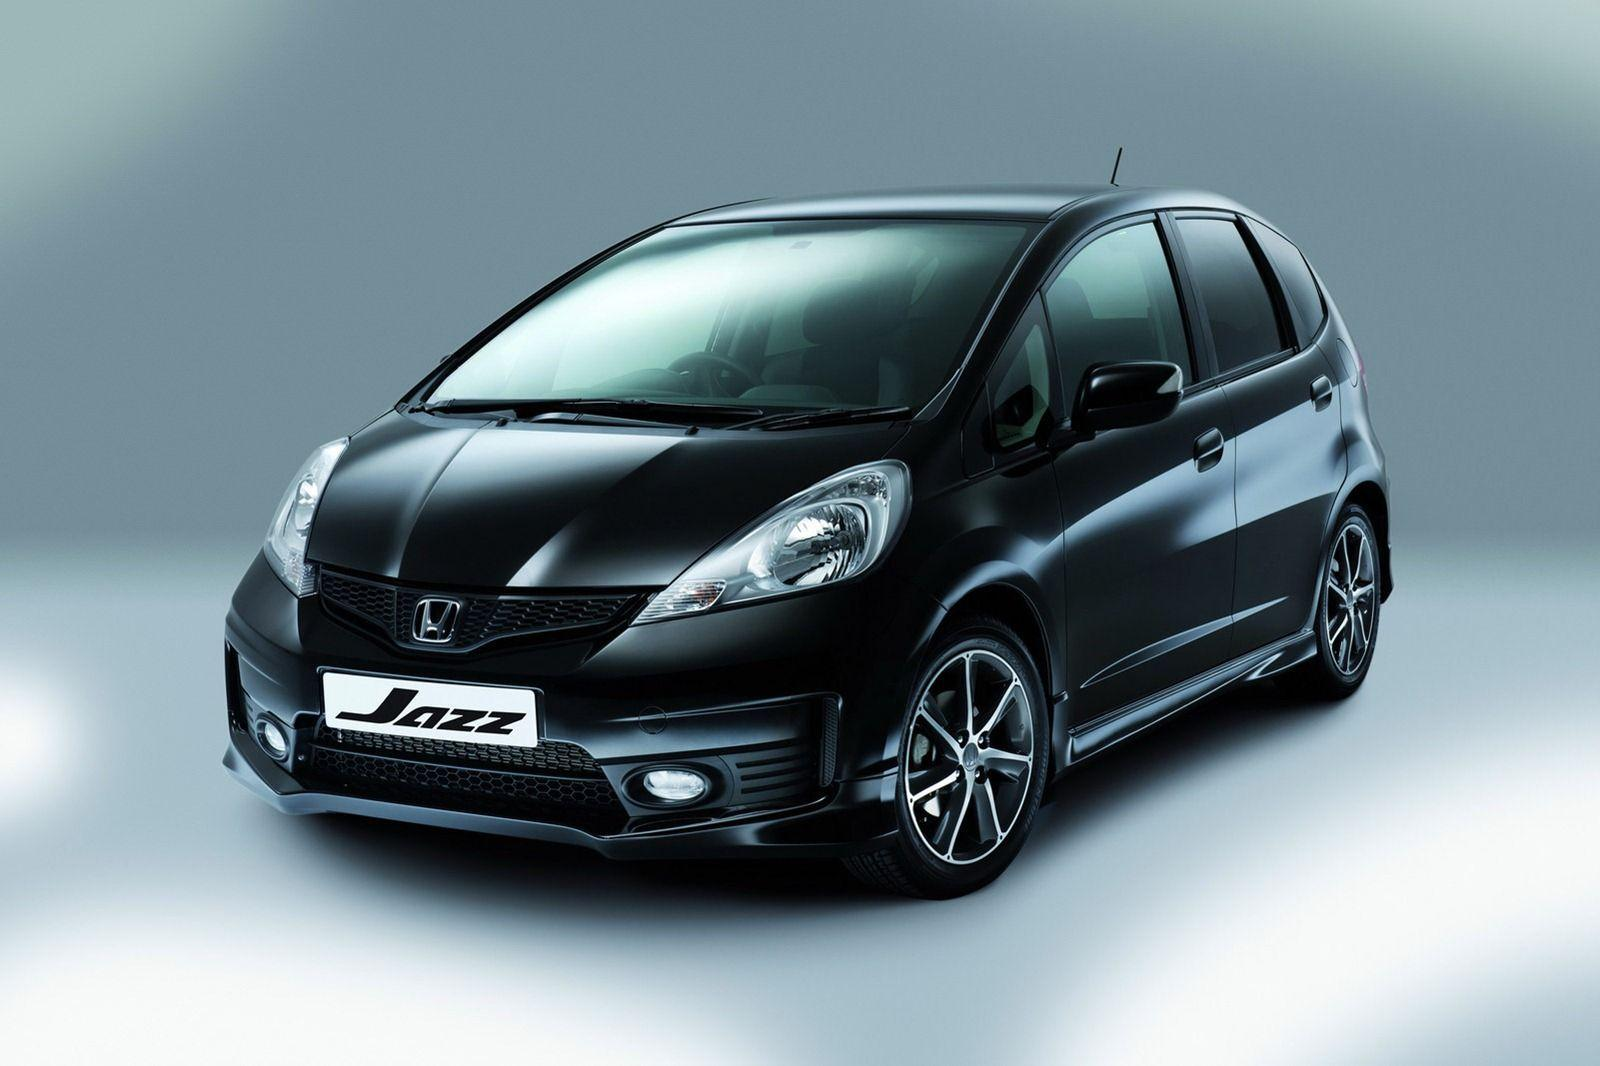 Honda Jazz Si in Black Color - Automotive Pictures & Wallpapers ...